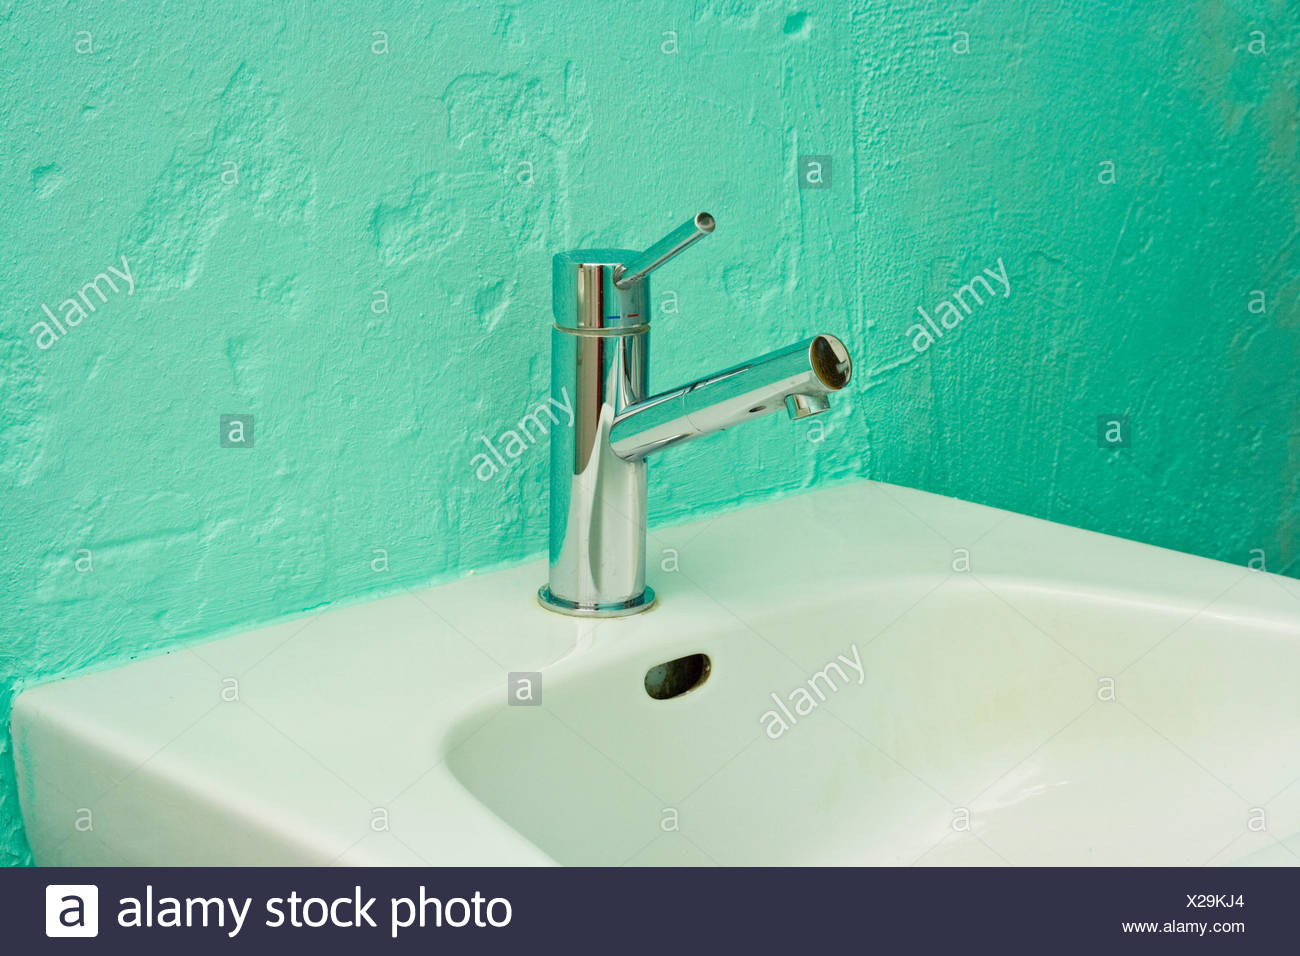 Tap Fittings Stock Photos & Tap Fittings Stock Images - Alamy